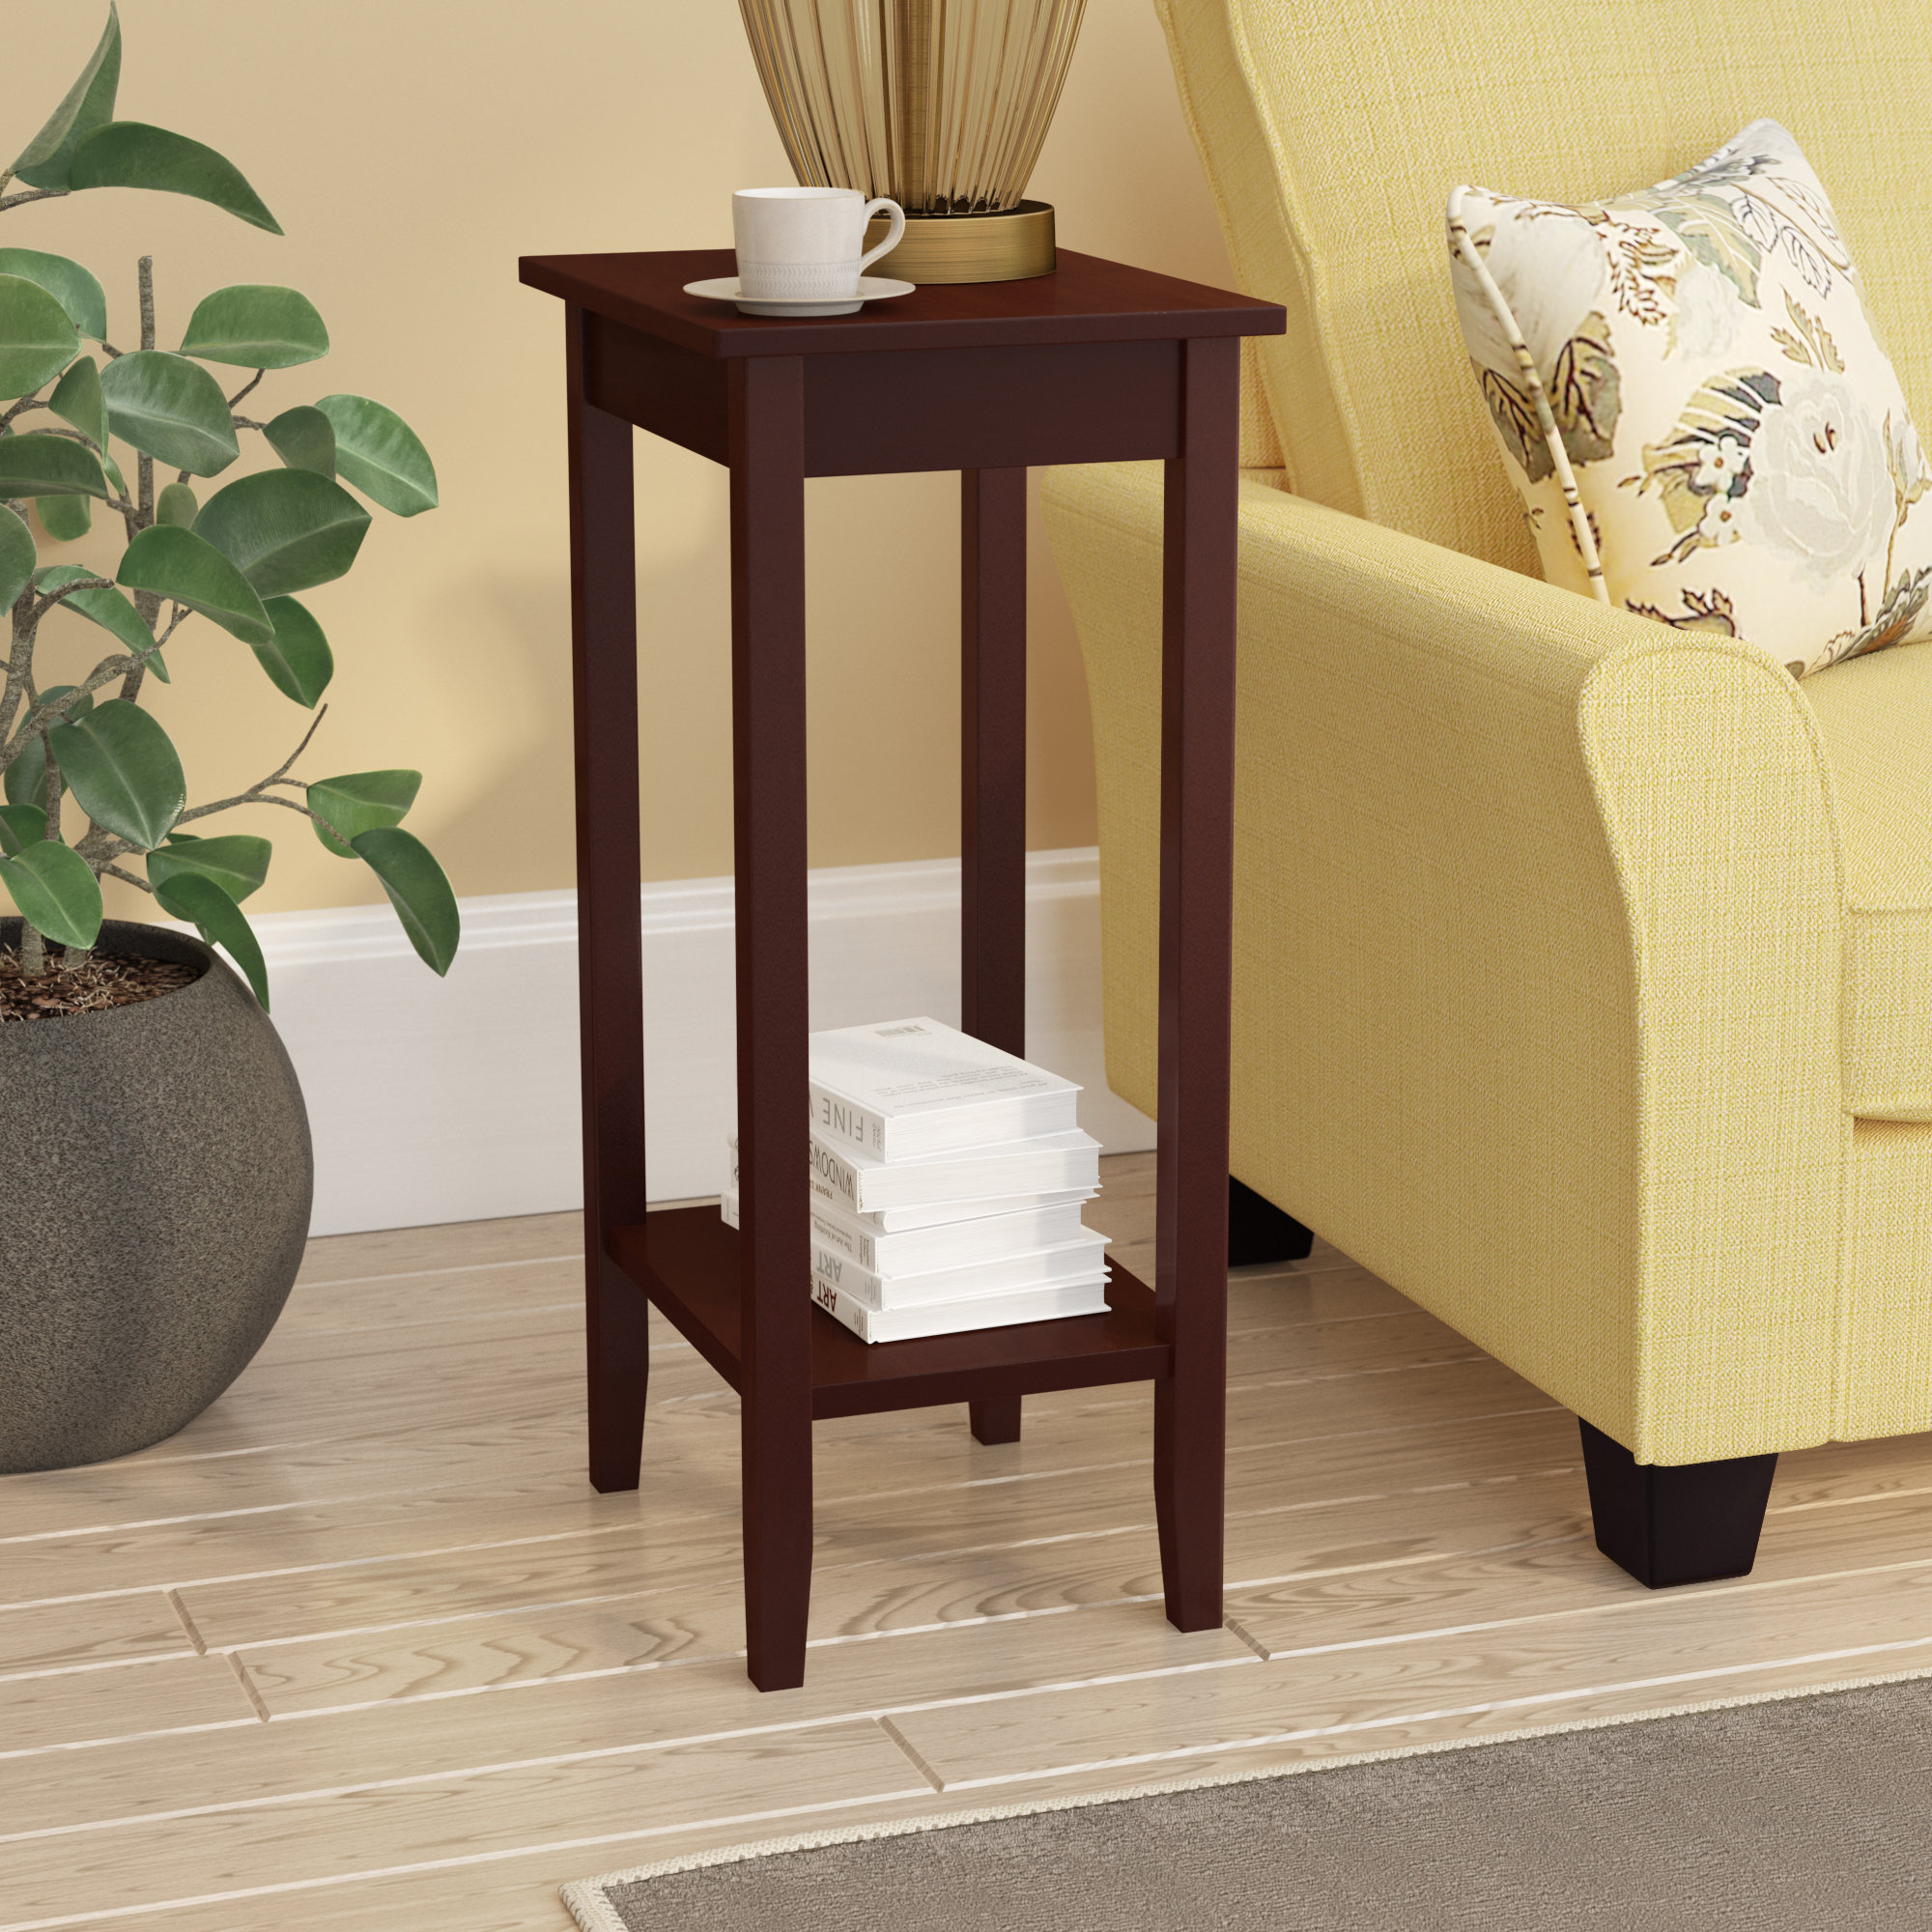 tall skinny accent table noble rosewood end quickview low marble coffee activity room essentials wardrobe blue bedside lamps lawn chair with umbrella white linen tablecloth iron